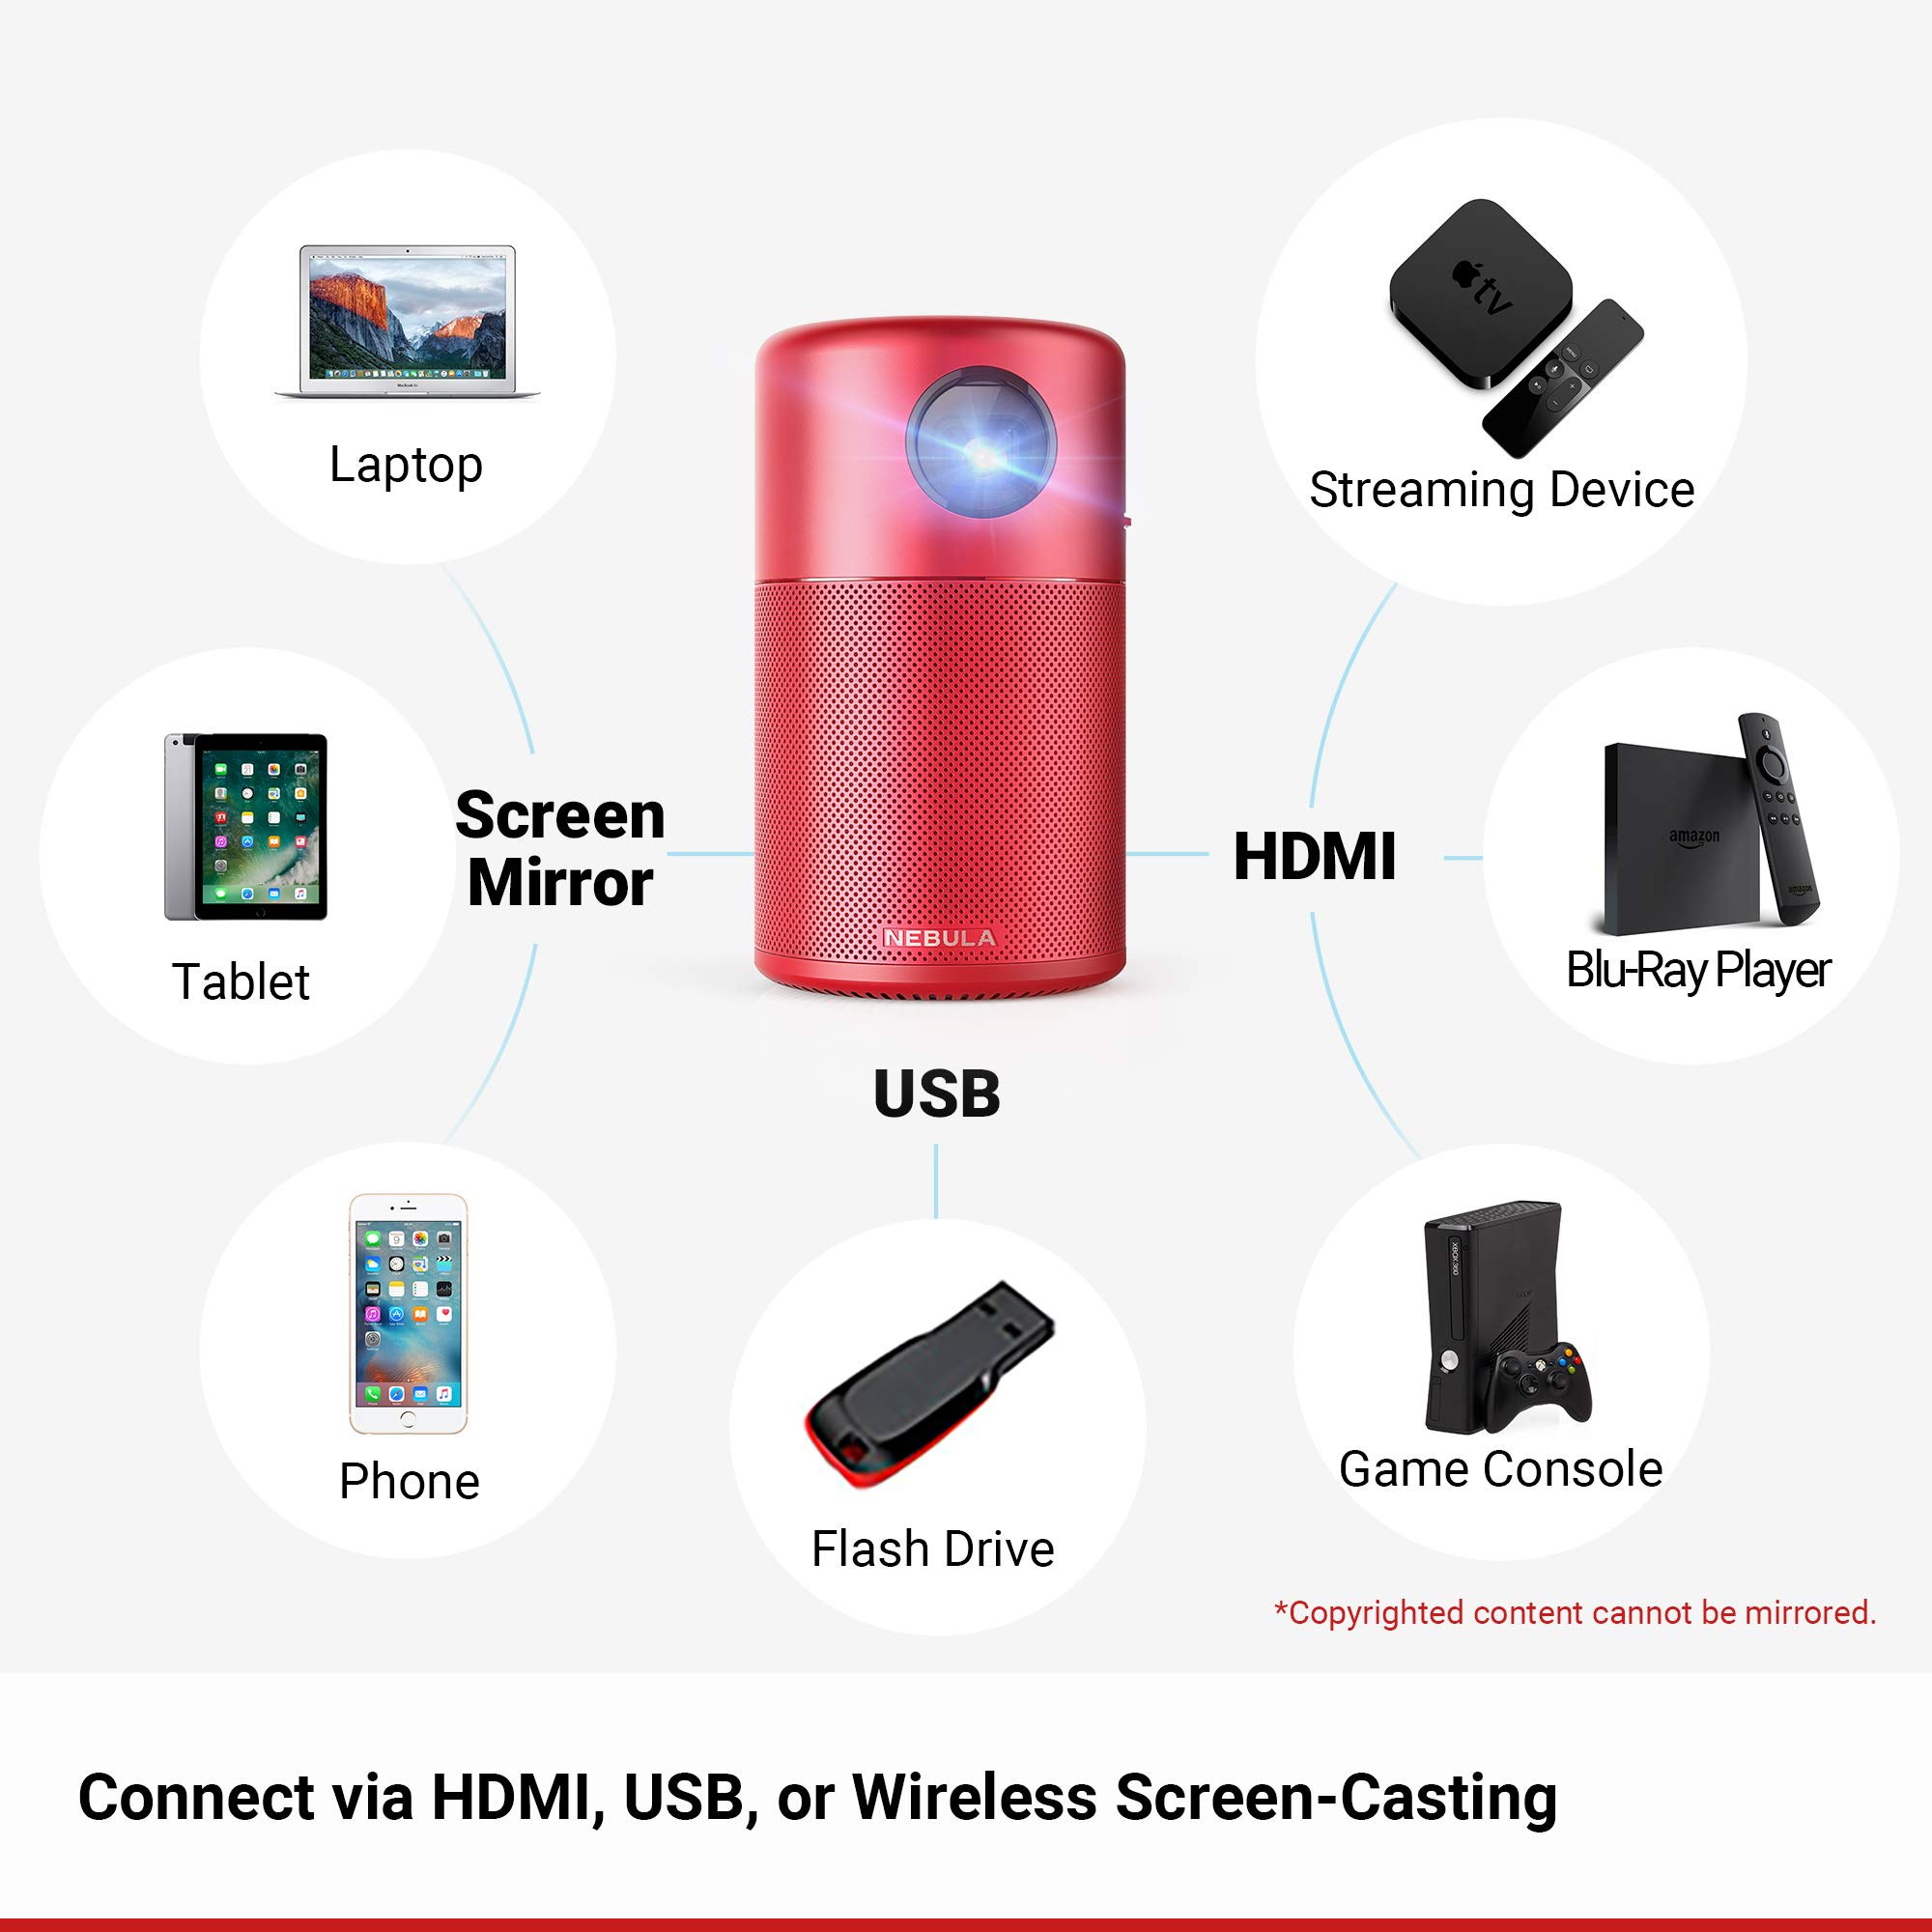 Nebula Capsule Smart Mini Projector, by Anker, Portable 100 ANSI lm High-Contrast Pocket Cinema with Wi-Fi, DLP, 360° Speaker, 100'' Picture, Android 7.1, 4-Hour Video Playtime, and App-Red by Anker (Image #5)